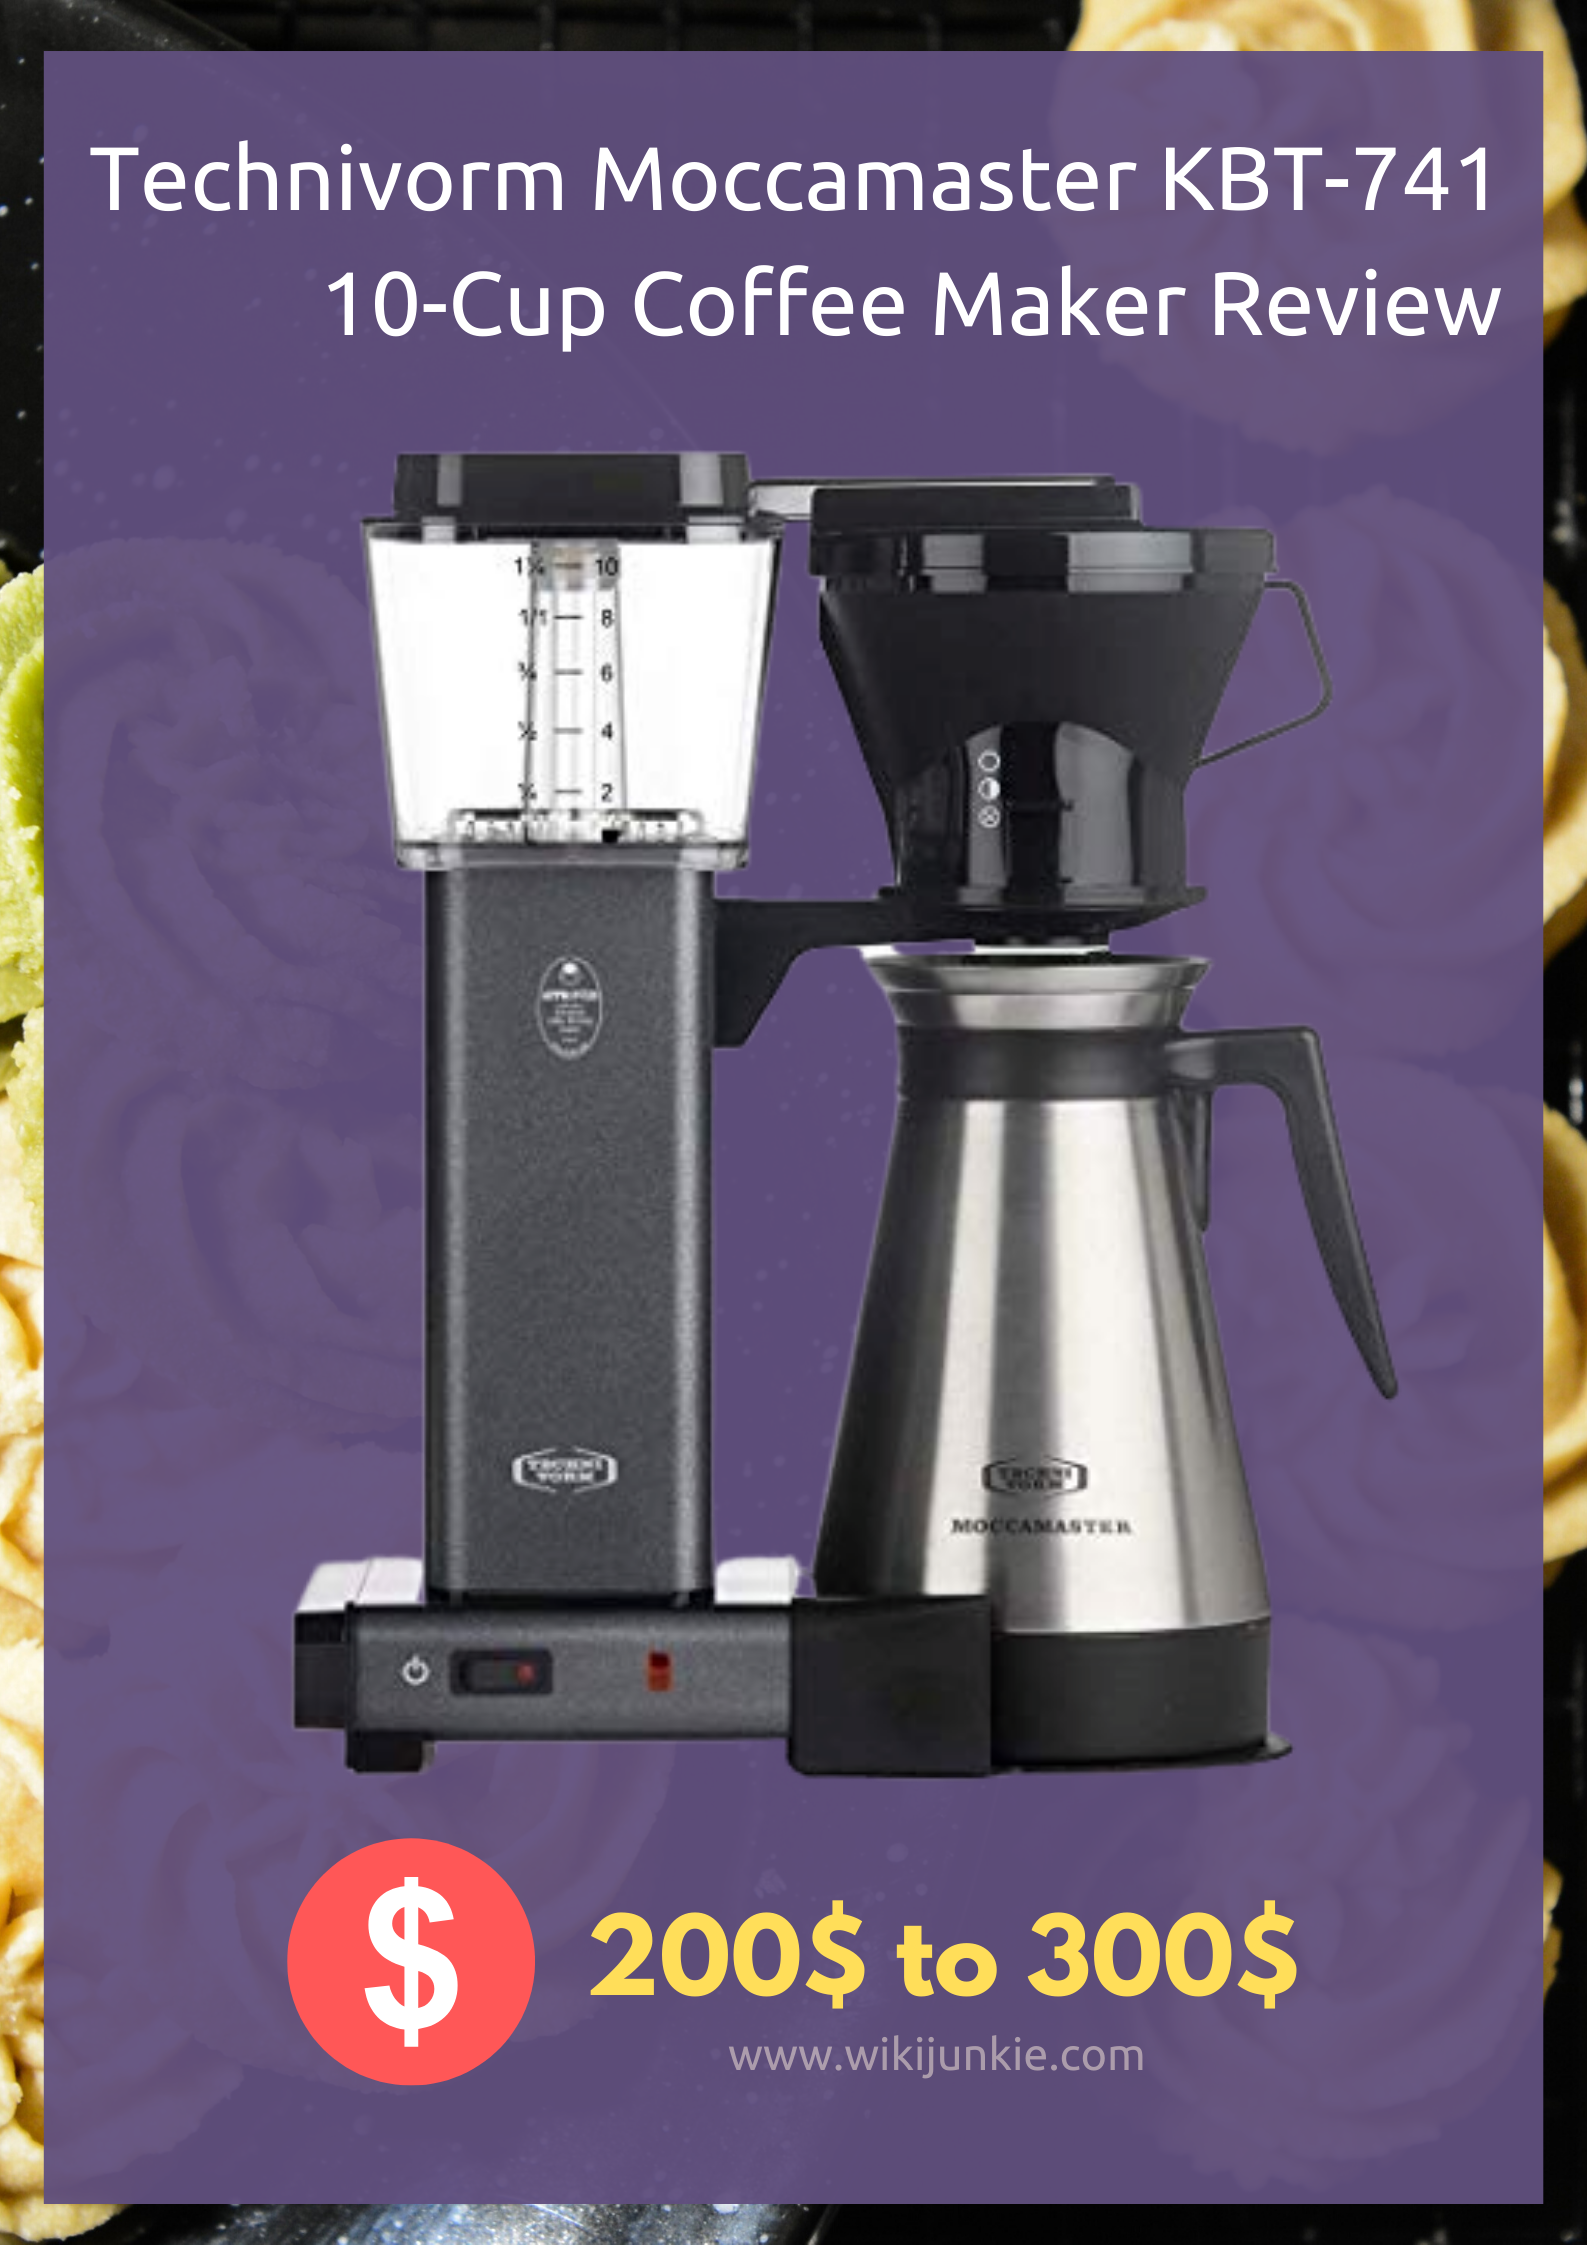 Technivorm Moccamaster KBT-741 10-Cup Coffee Maker Review